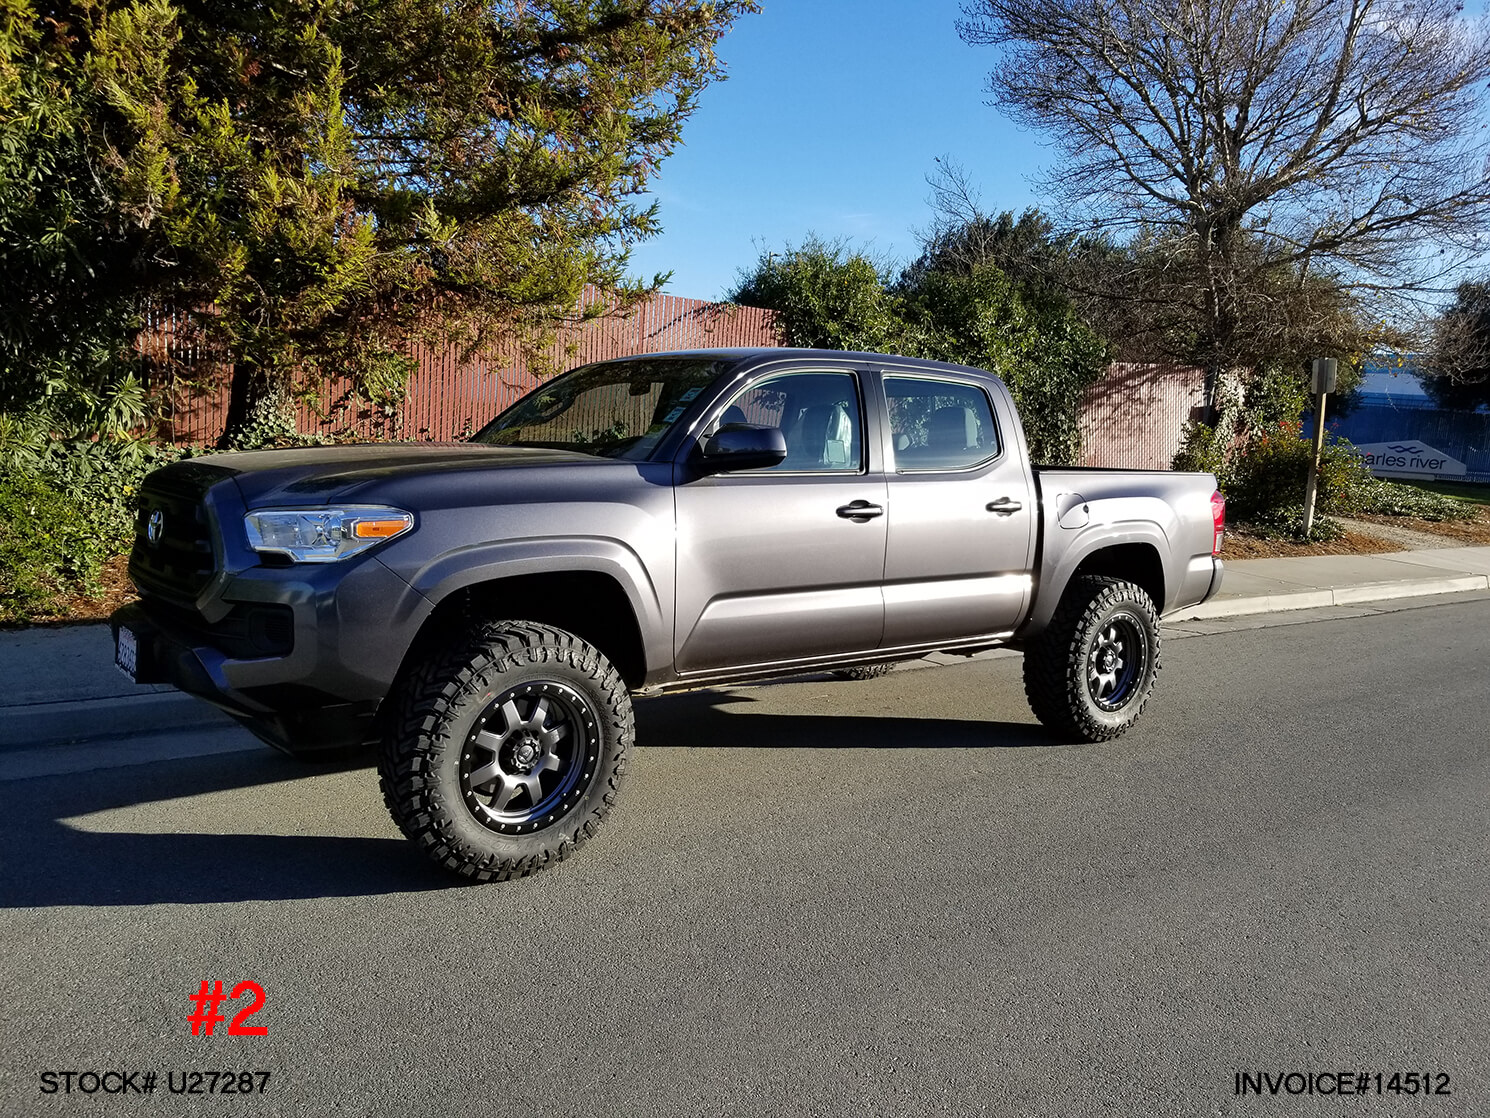 2017 TOYOTA TACOMA CREW CAB #U27287 | Truck and SUV Parts ...